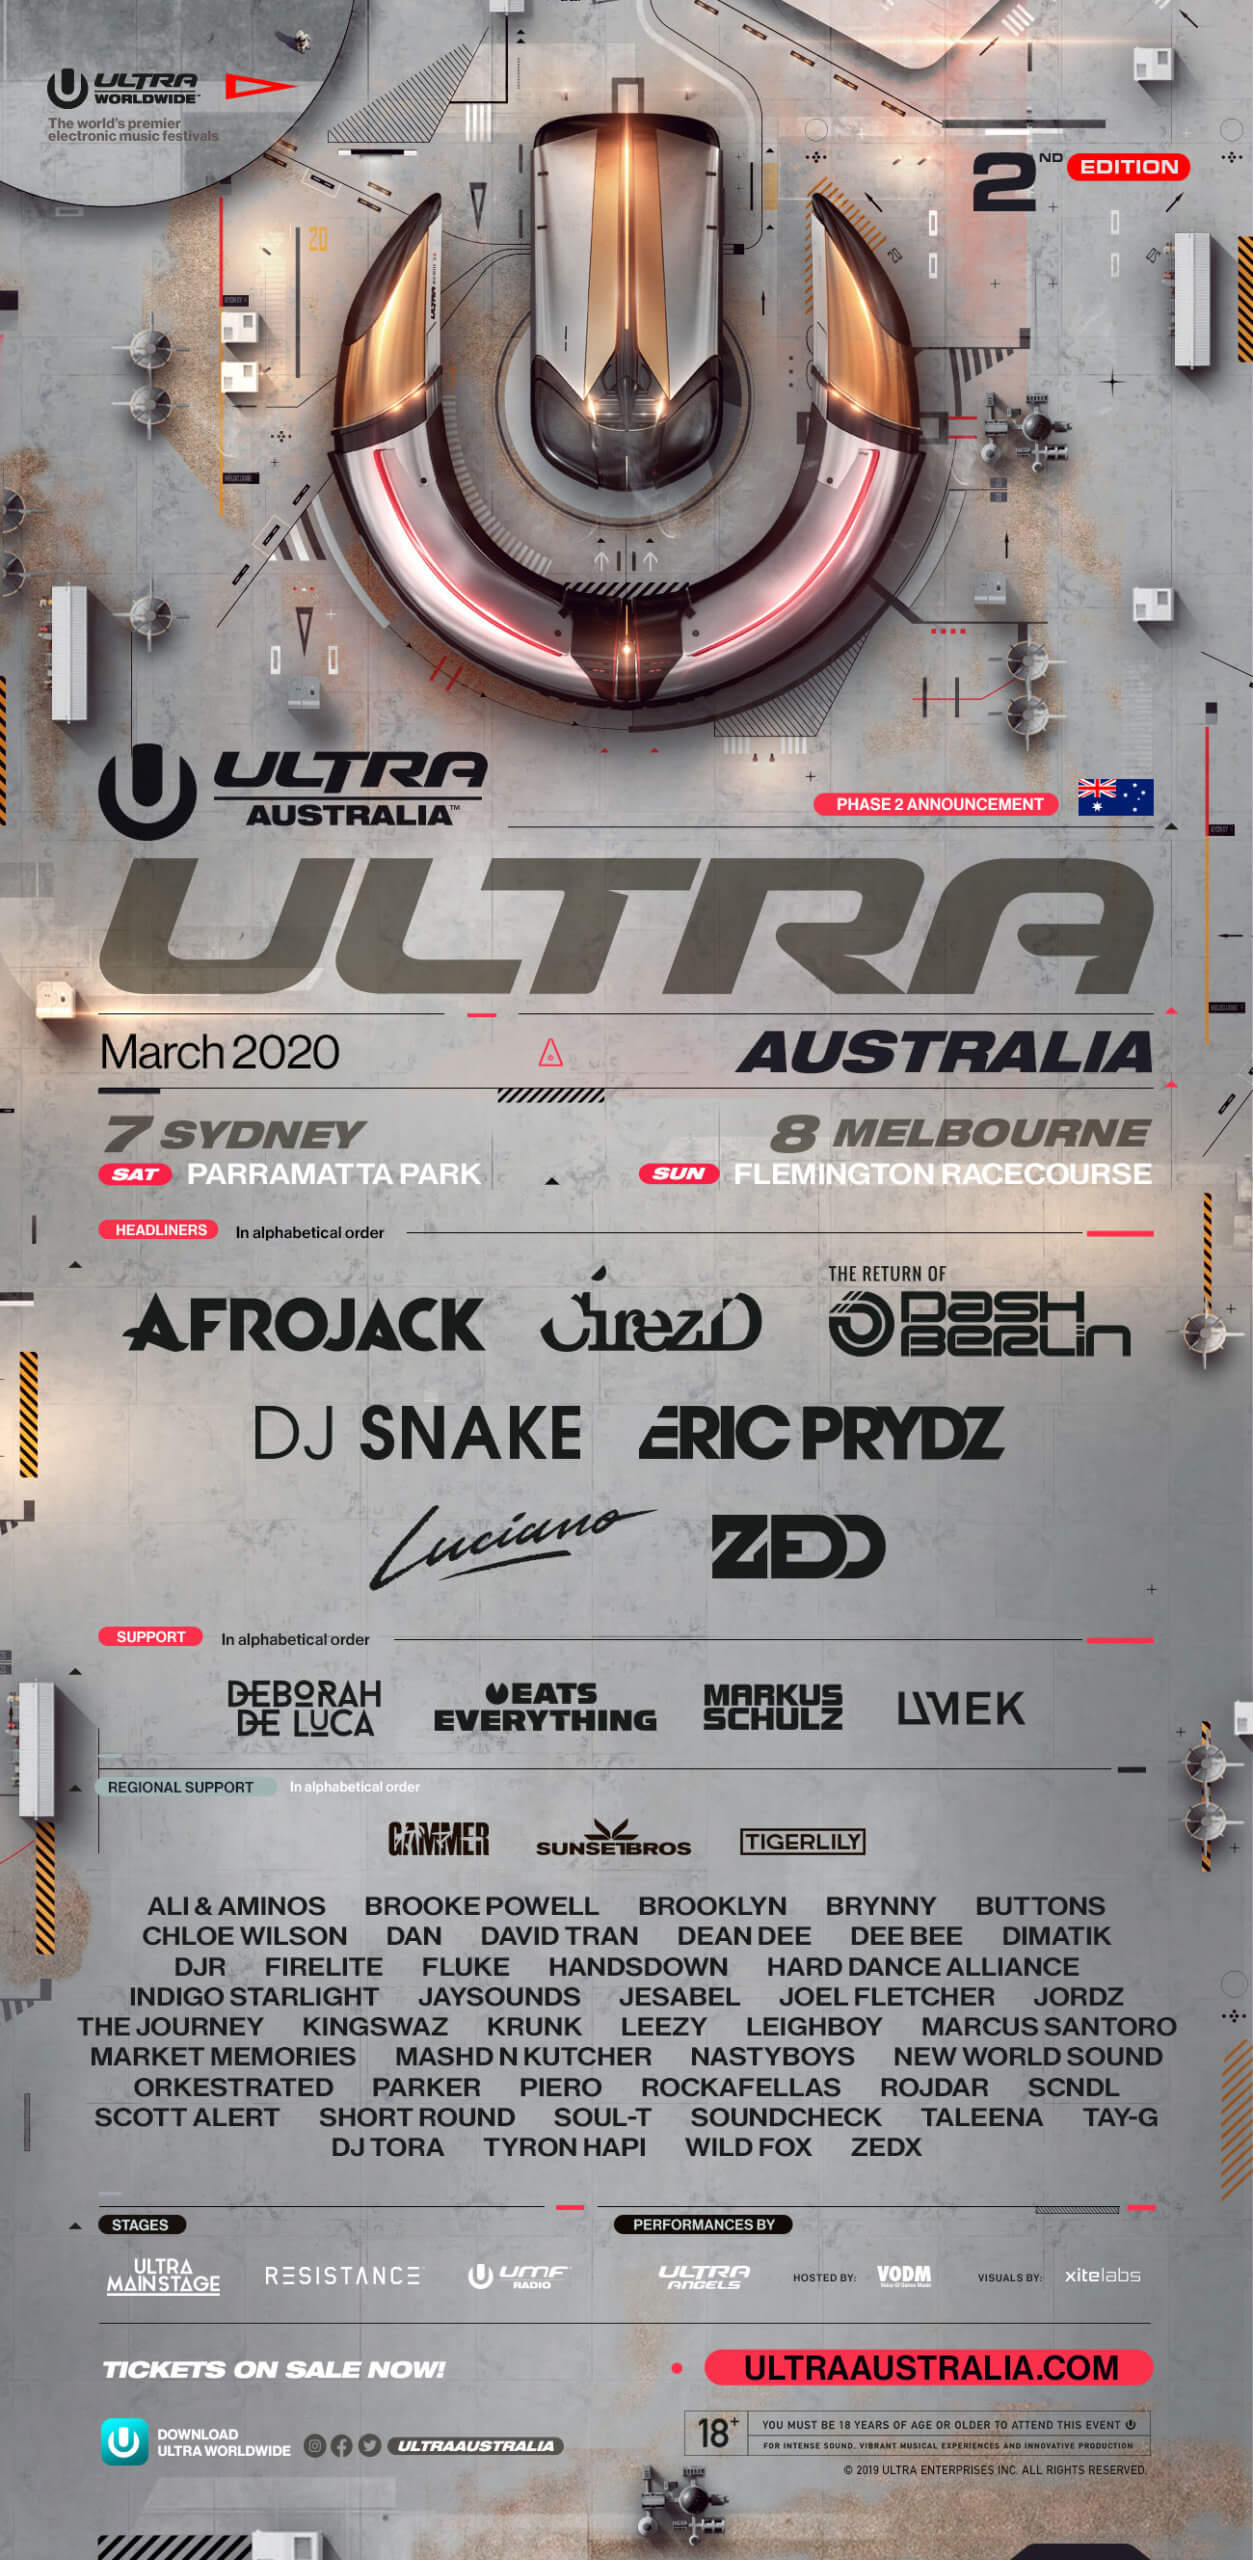 ULTRA Australia Announces Phase 2 Lineup